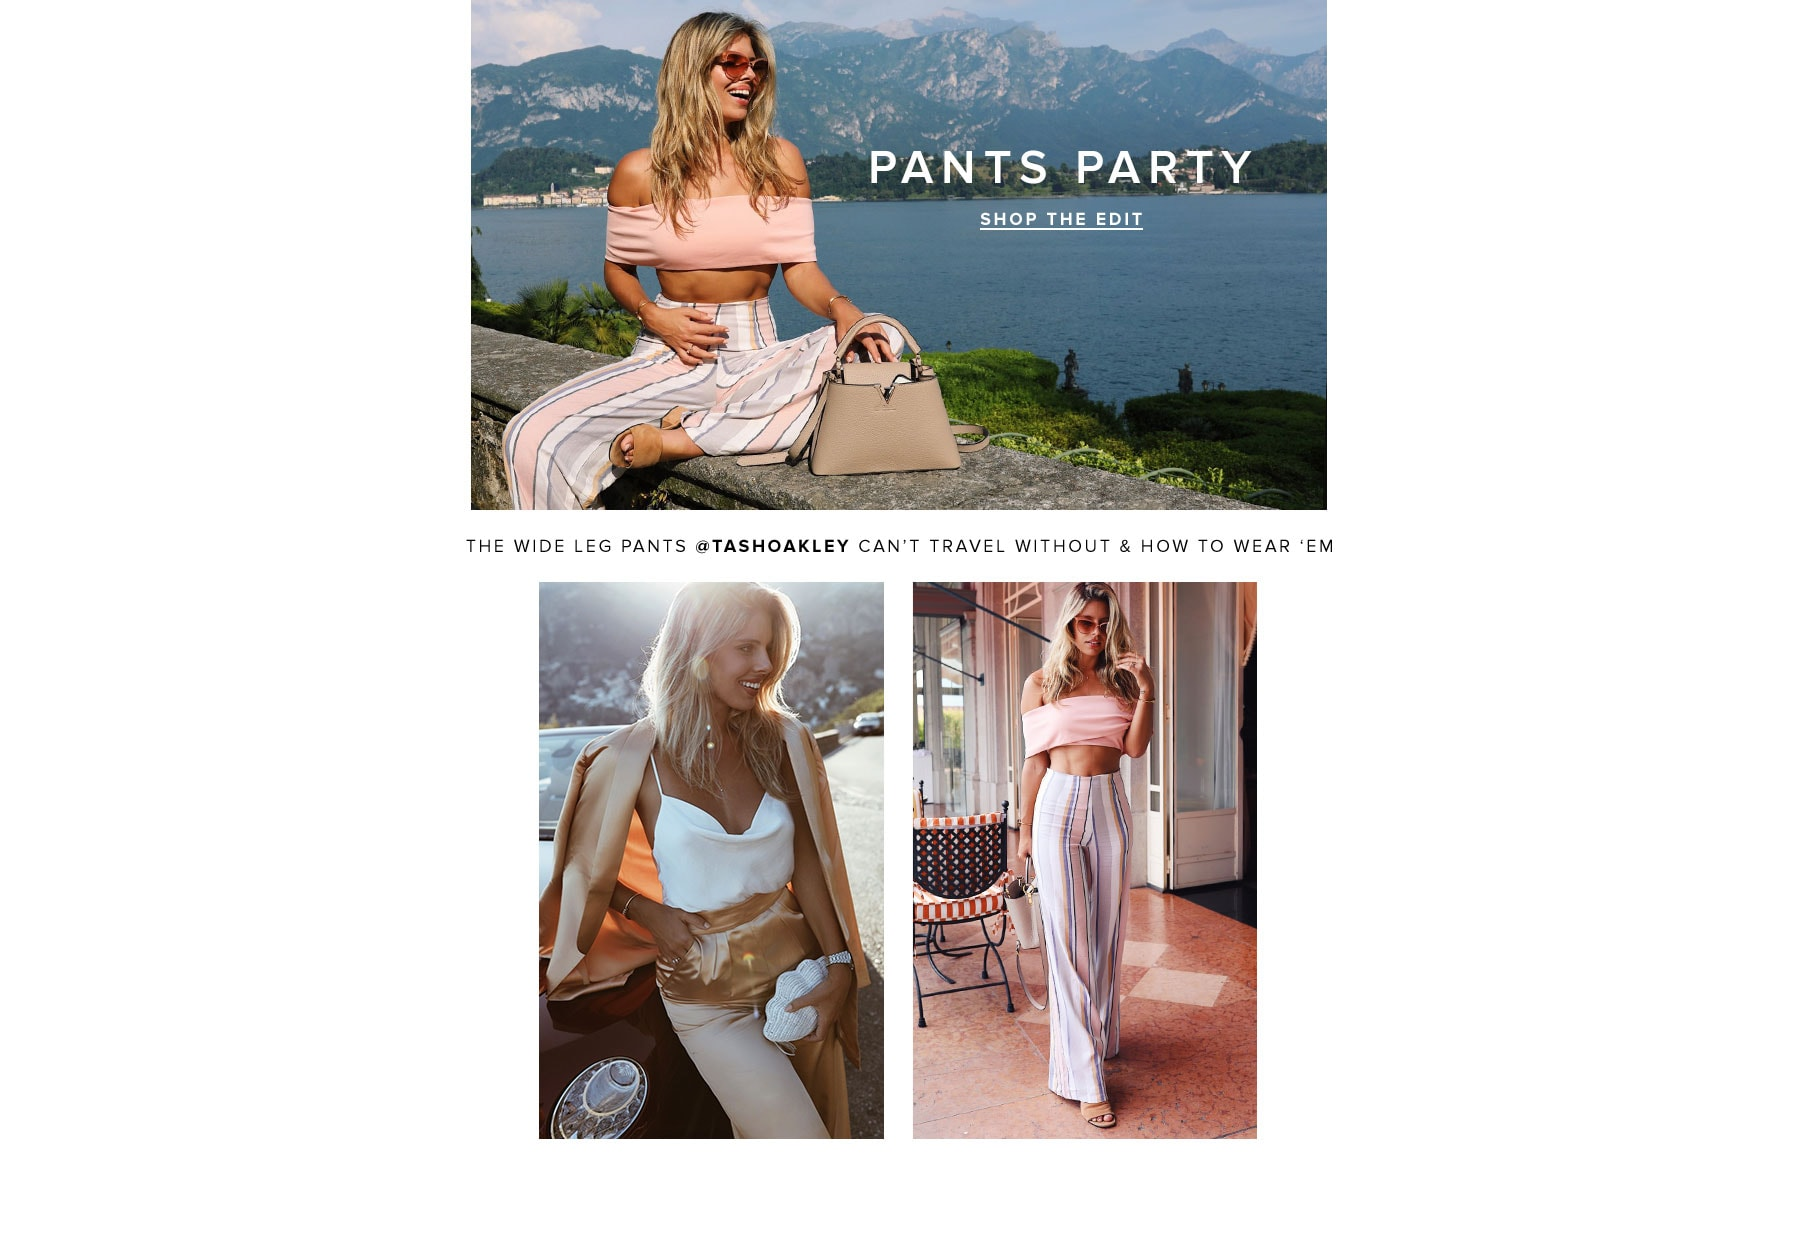 Pants Party. The wide leg pants @tashoakley can't travel without & how to wear 'em. Shop the Edit.